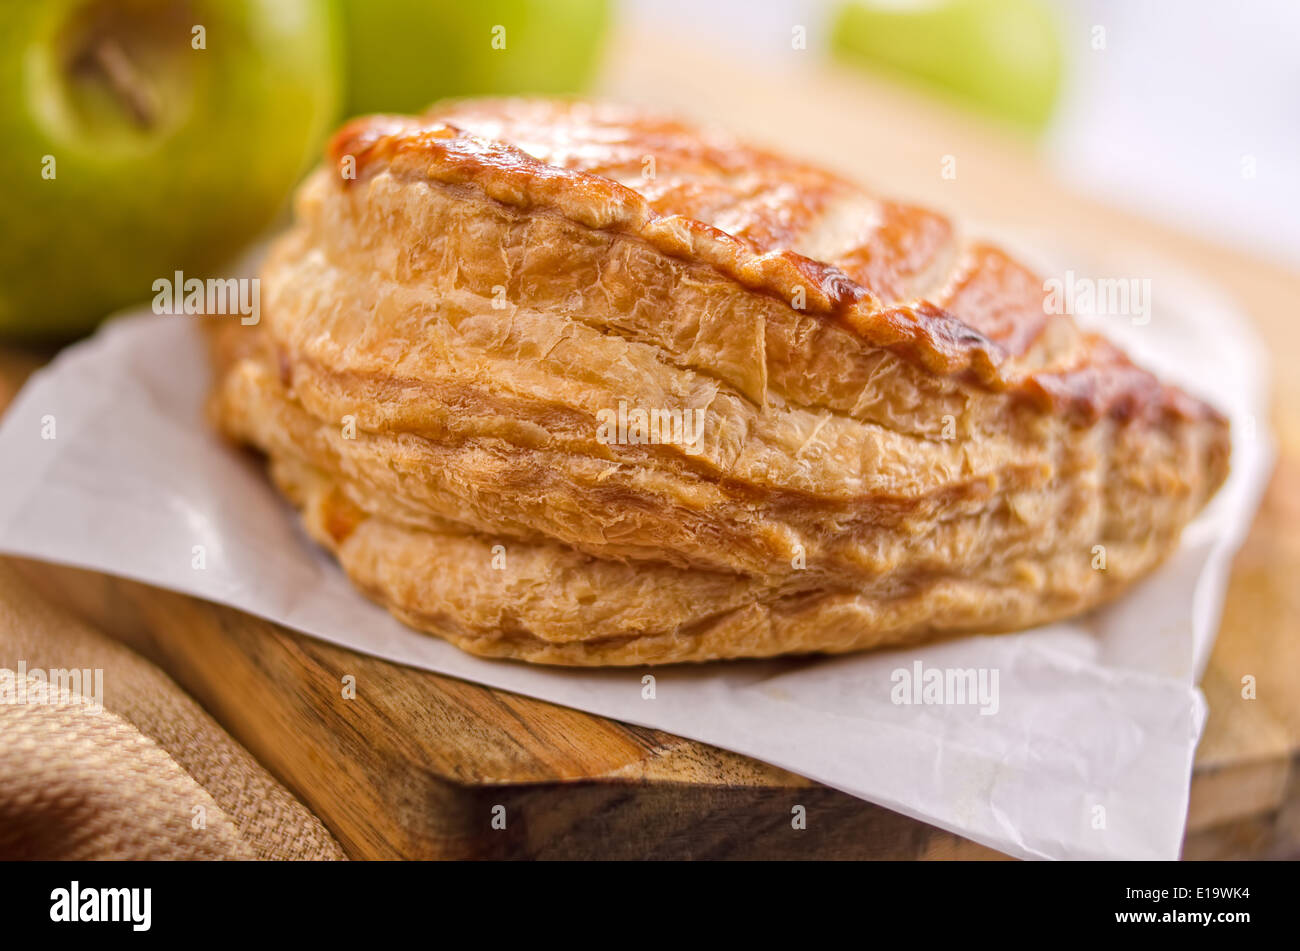 A freshly baked apple turnover. - Stock Image